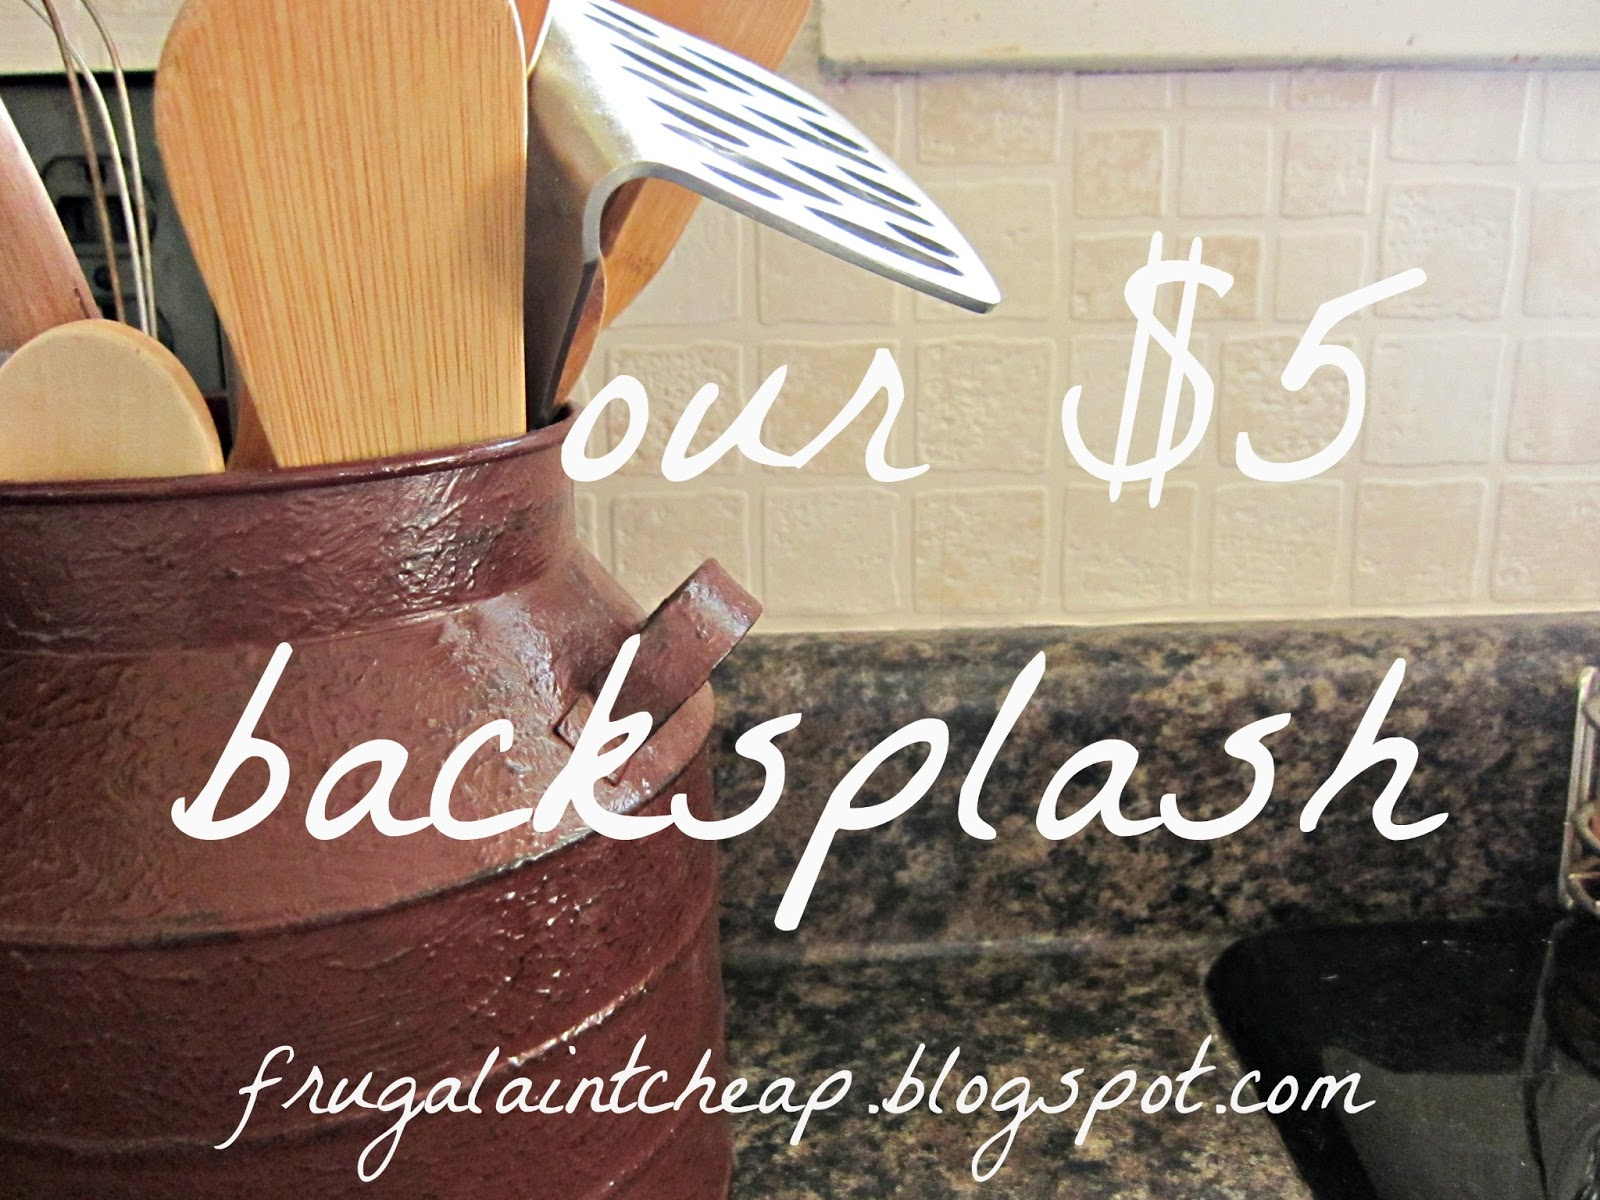 Frugal ain39t cheap kitchen backsplash great for renters too for Cheap kitchen backsplash diy